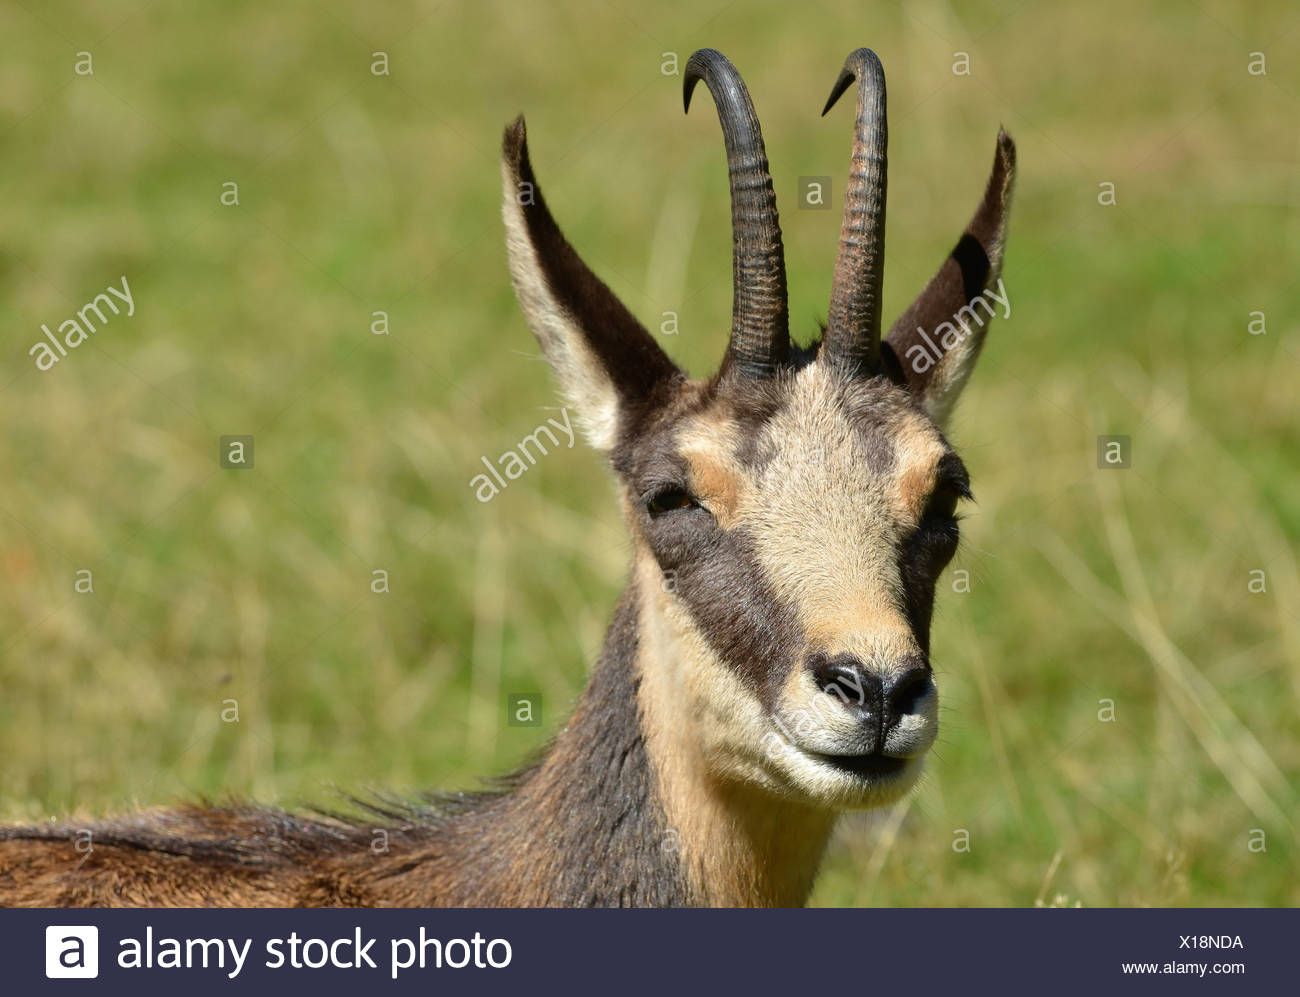 Monochrome portrait of a Chamois, a european mountain antelope, hunted for the skin which was used for chammy cleaning cloths - Stock Image